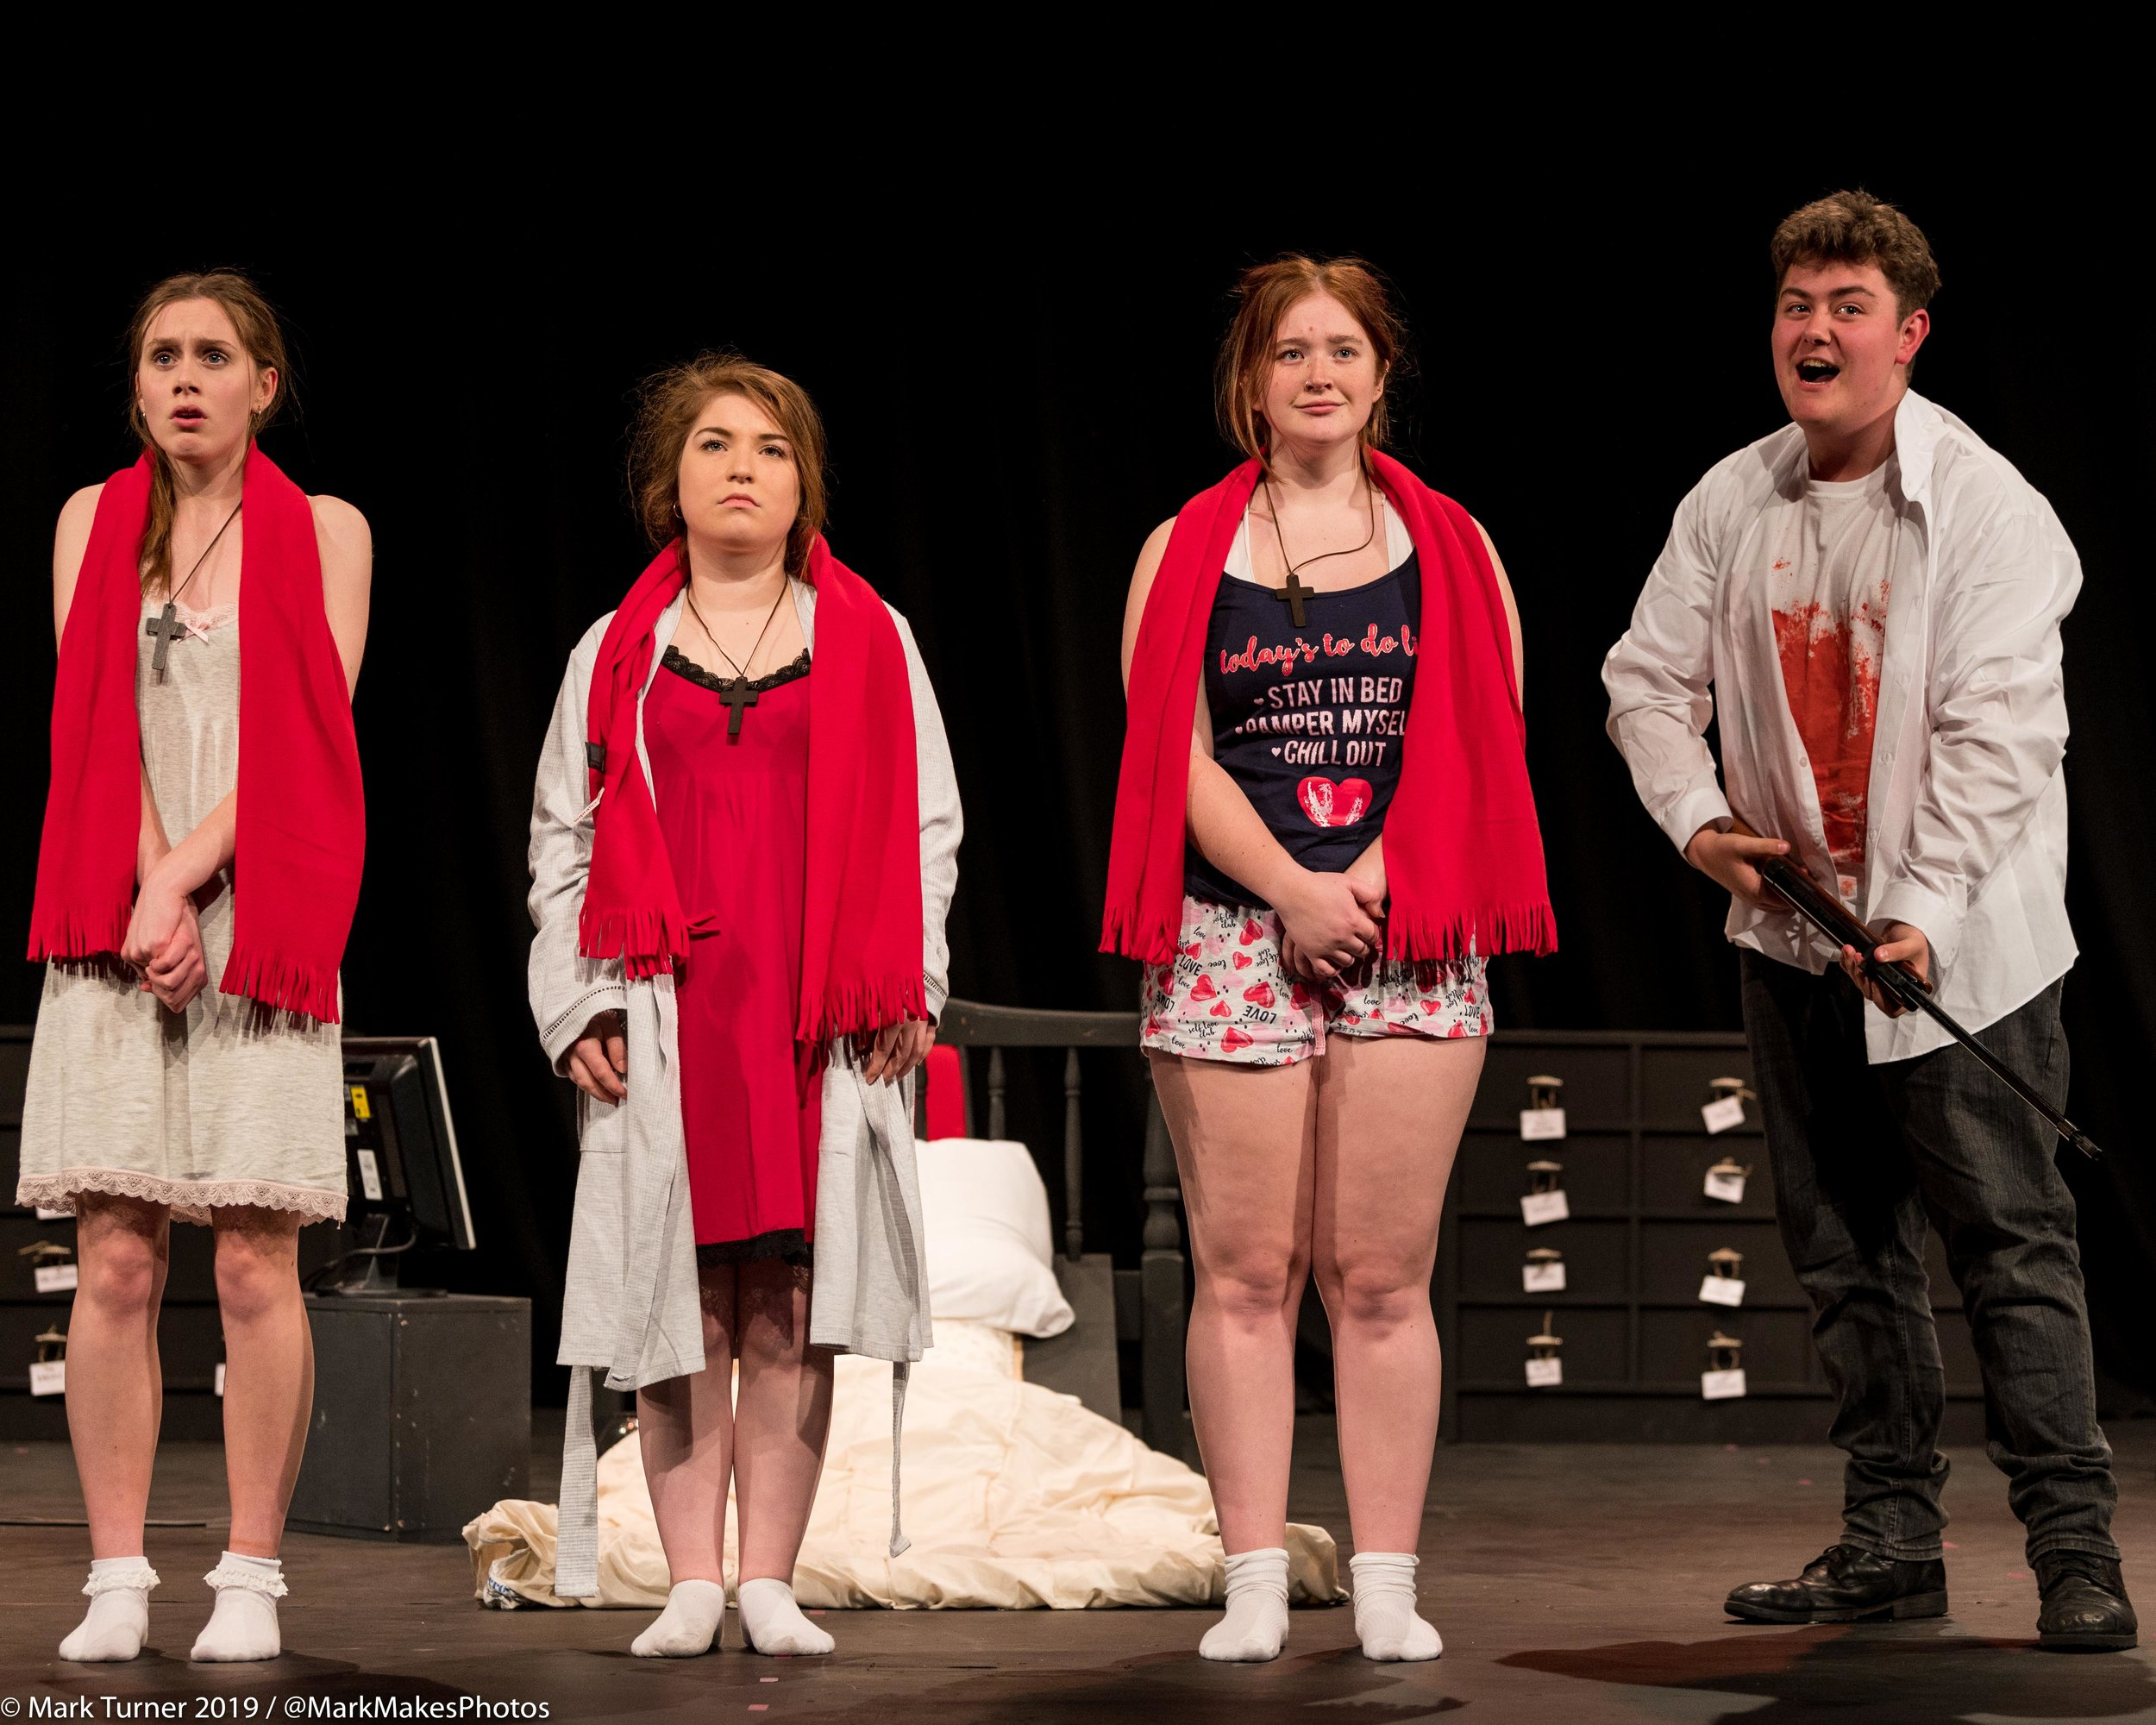 Applause Youth Theatre Company opened the 2019 Leatherhead Drama Festival with 'Five Kinds of Silence' by Shelagh Stephenson. Directed by David Walker.